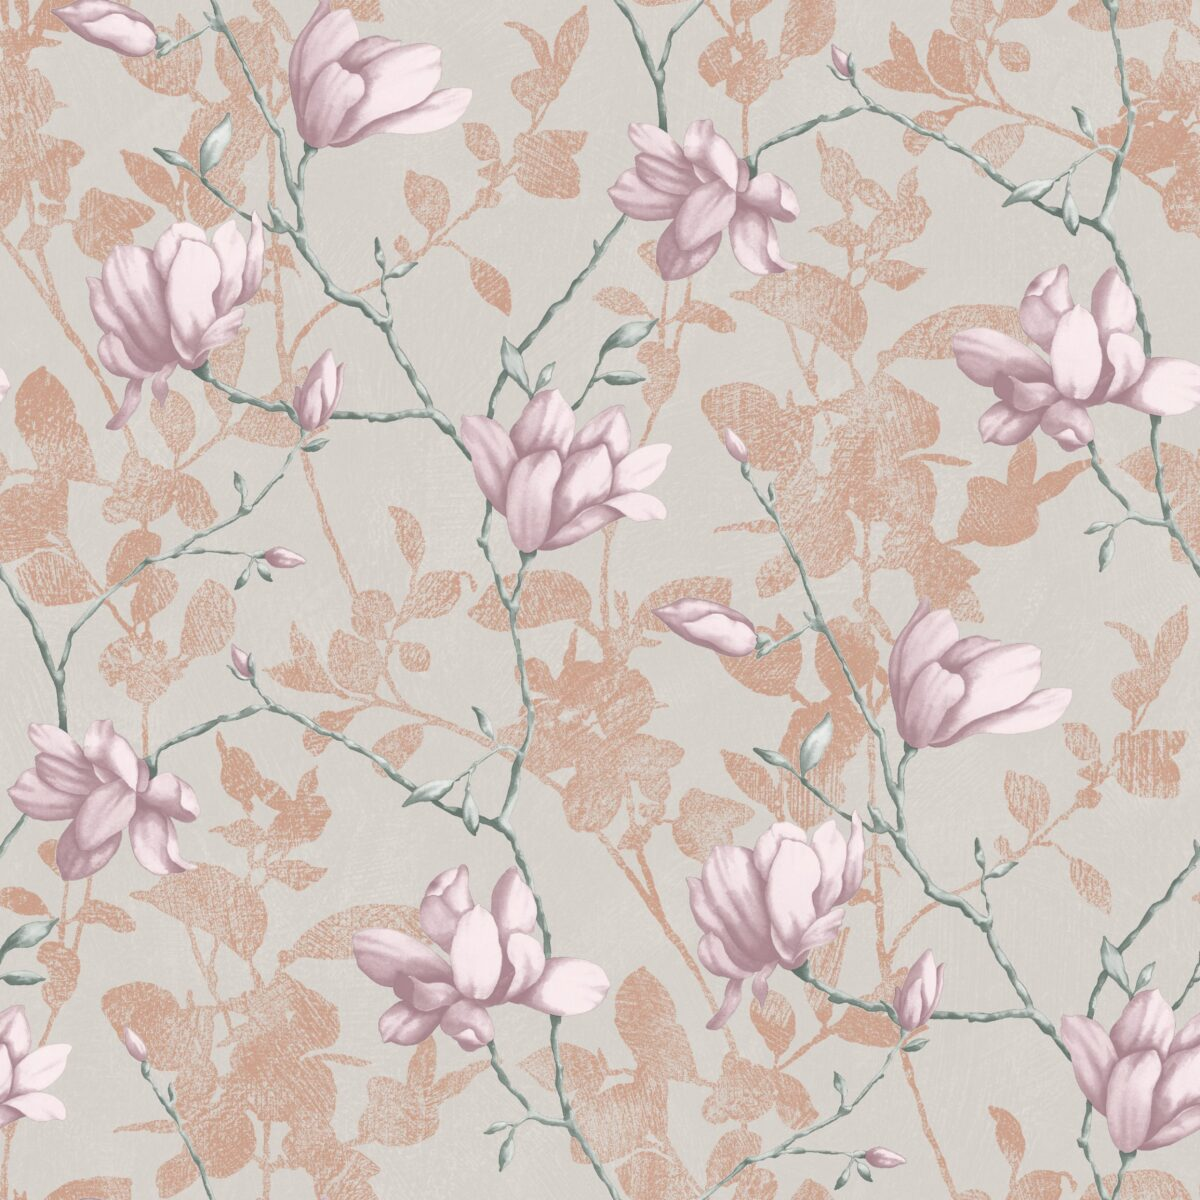 In Bloom - Lily Tree IV - 7230 -